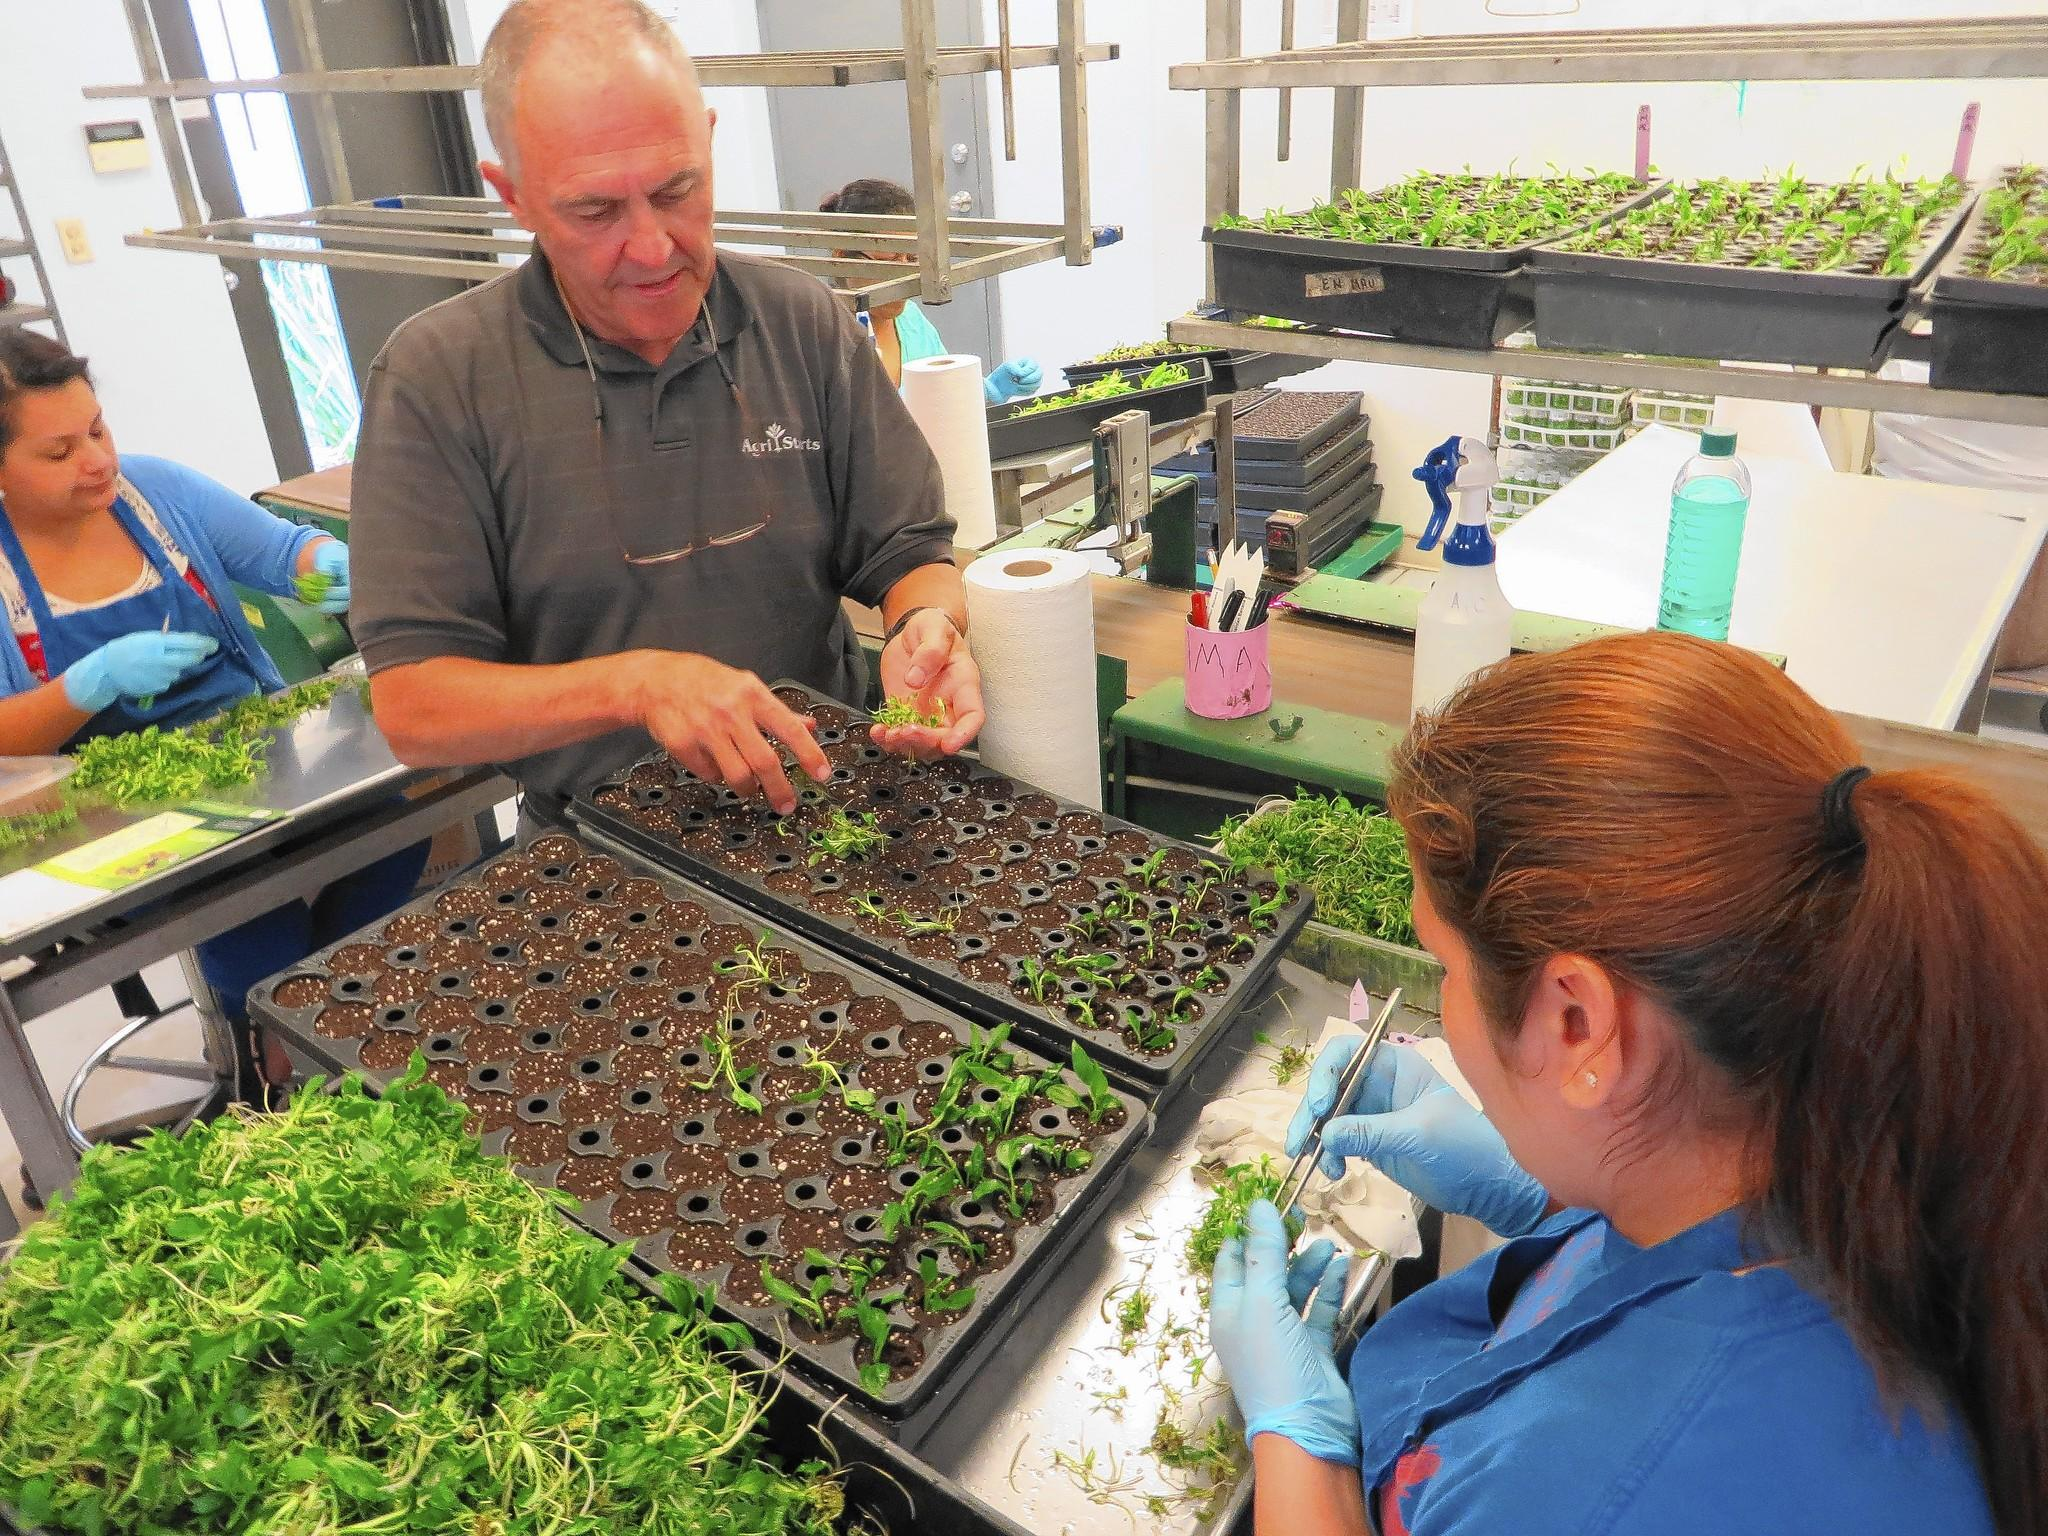 Randy Strode, owner of Agri-Starts Inc. near Apopka, inspects cloned plants being replanted by worker Alma Casillas.